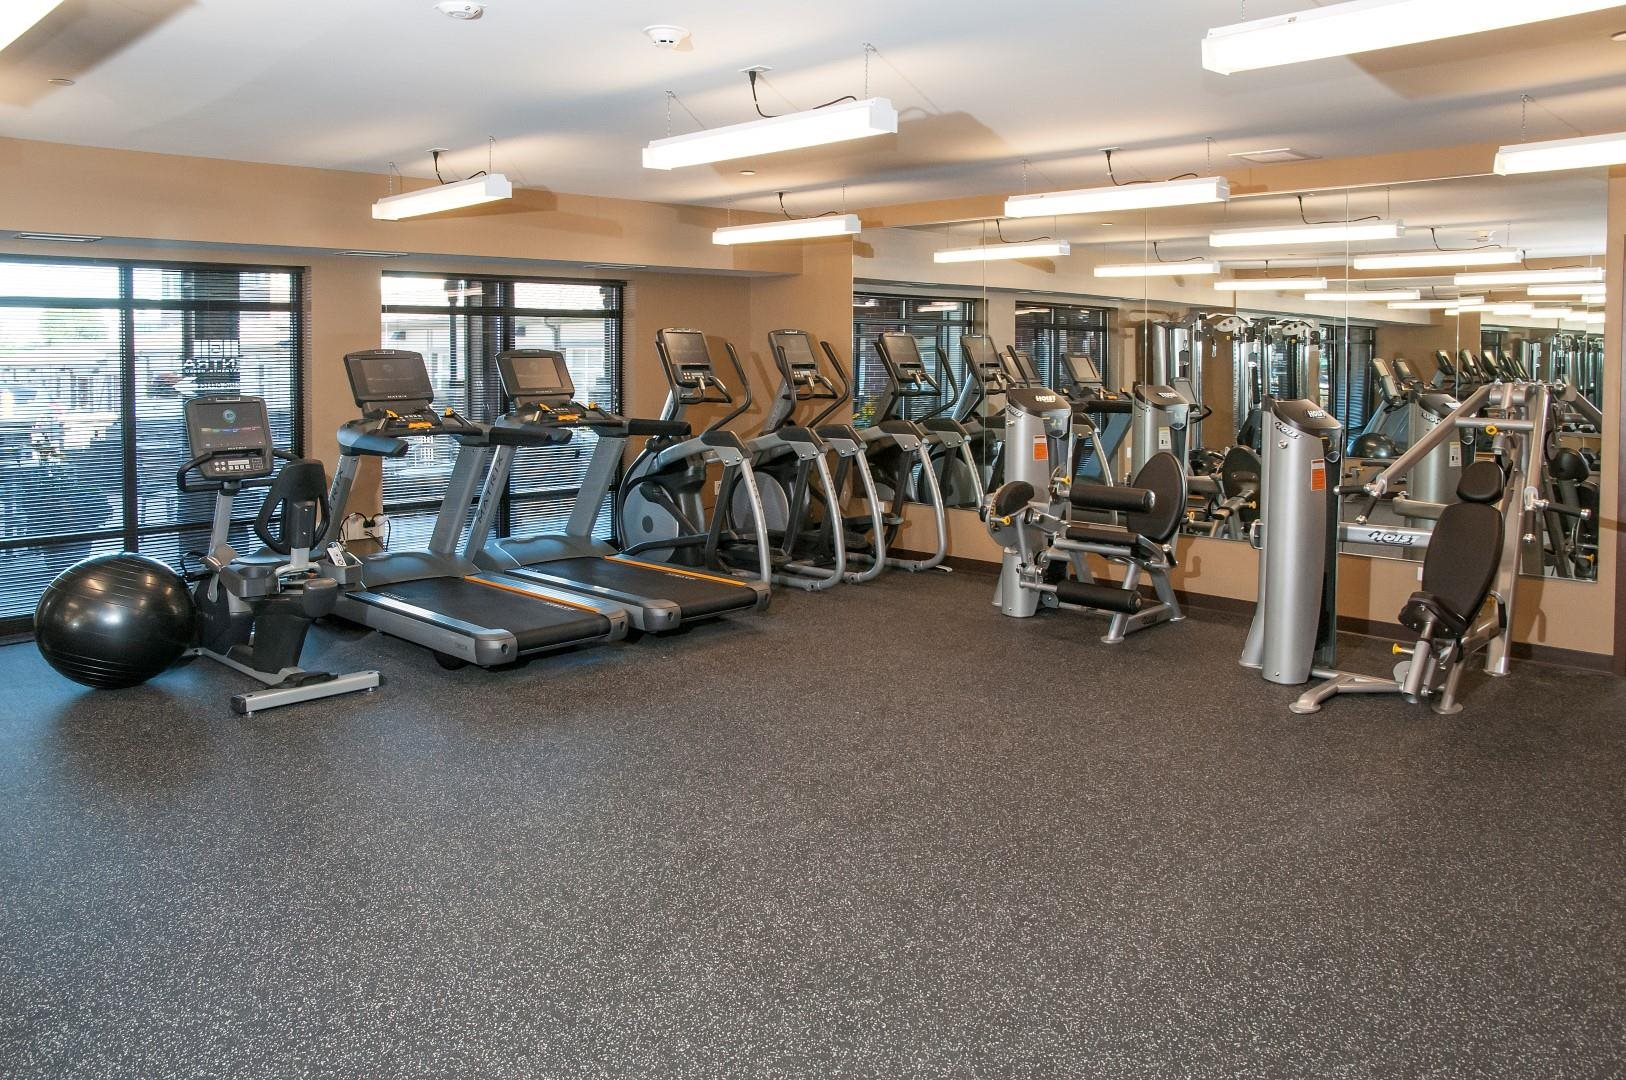 Cardio Equipment at 5 Central Apartments, Osseo, MN 55369